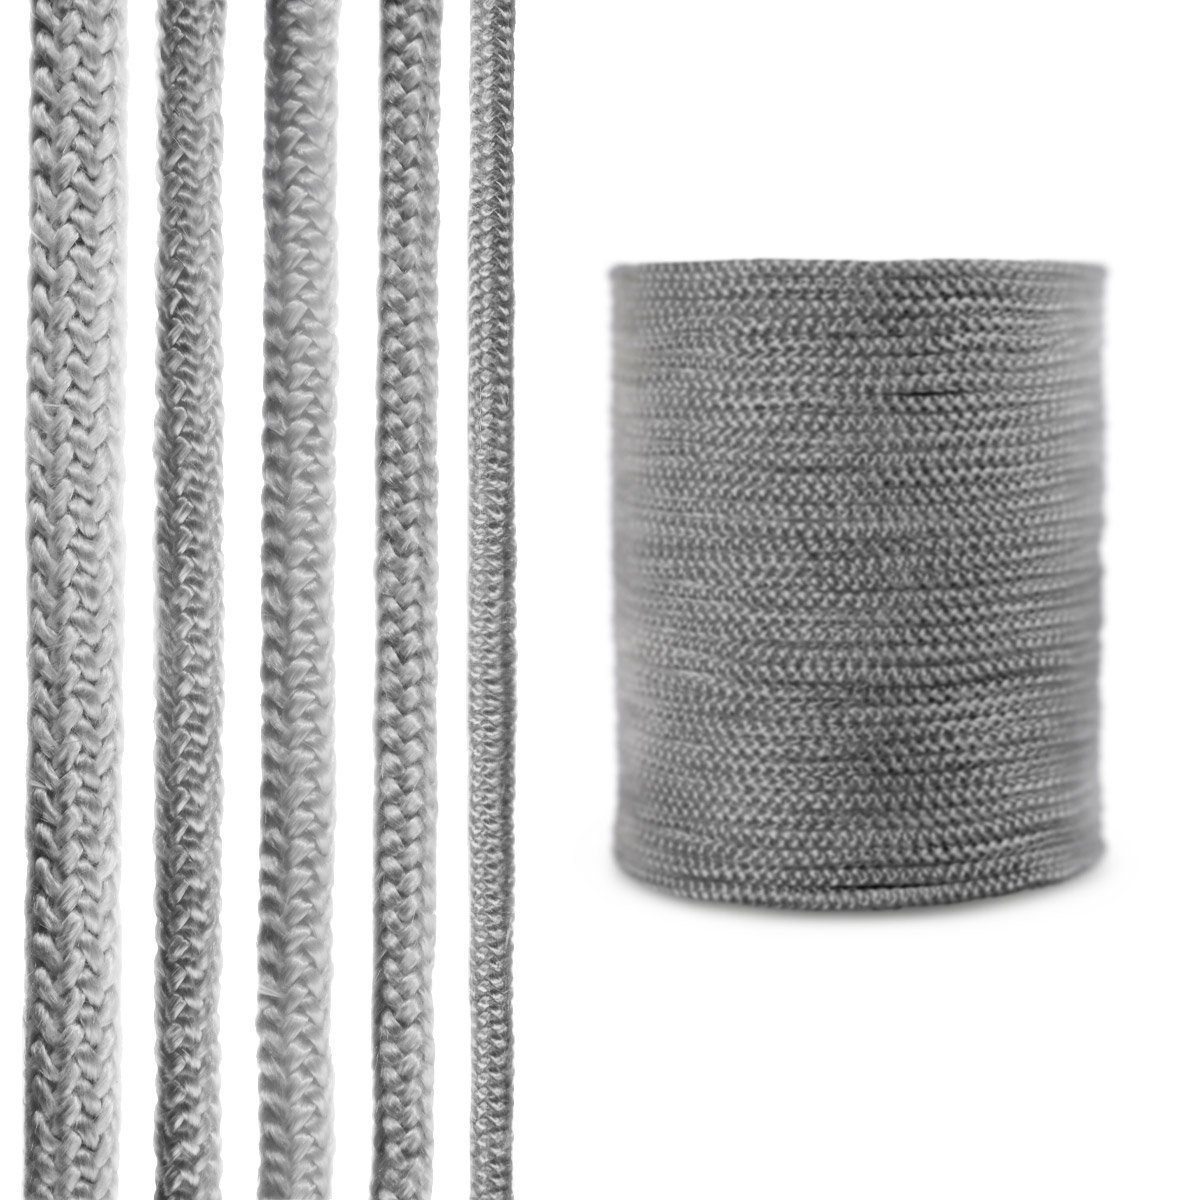 STEIGNER Fiberglass Fireplace Sealing Rope Cord SKD02-6 3 m 6 mm Dark Gray Temperature Resistant Up To 550°C or 1022°F